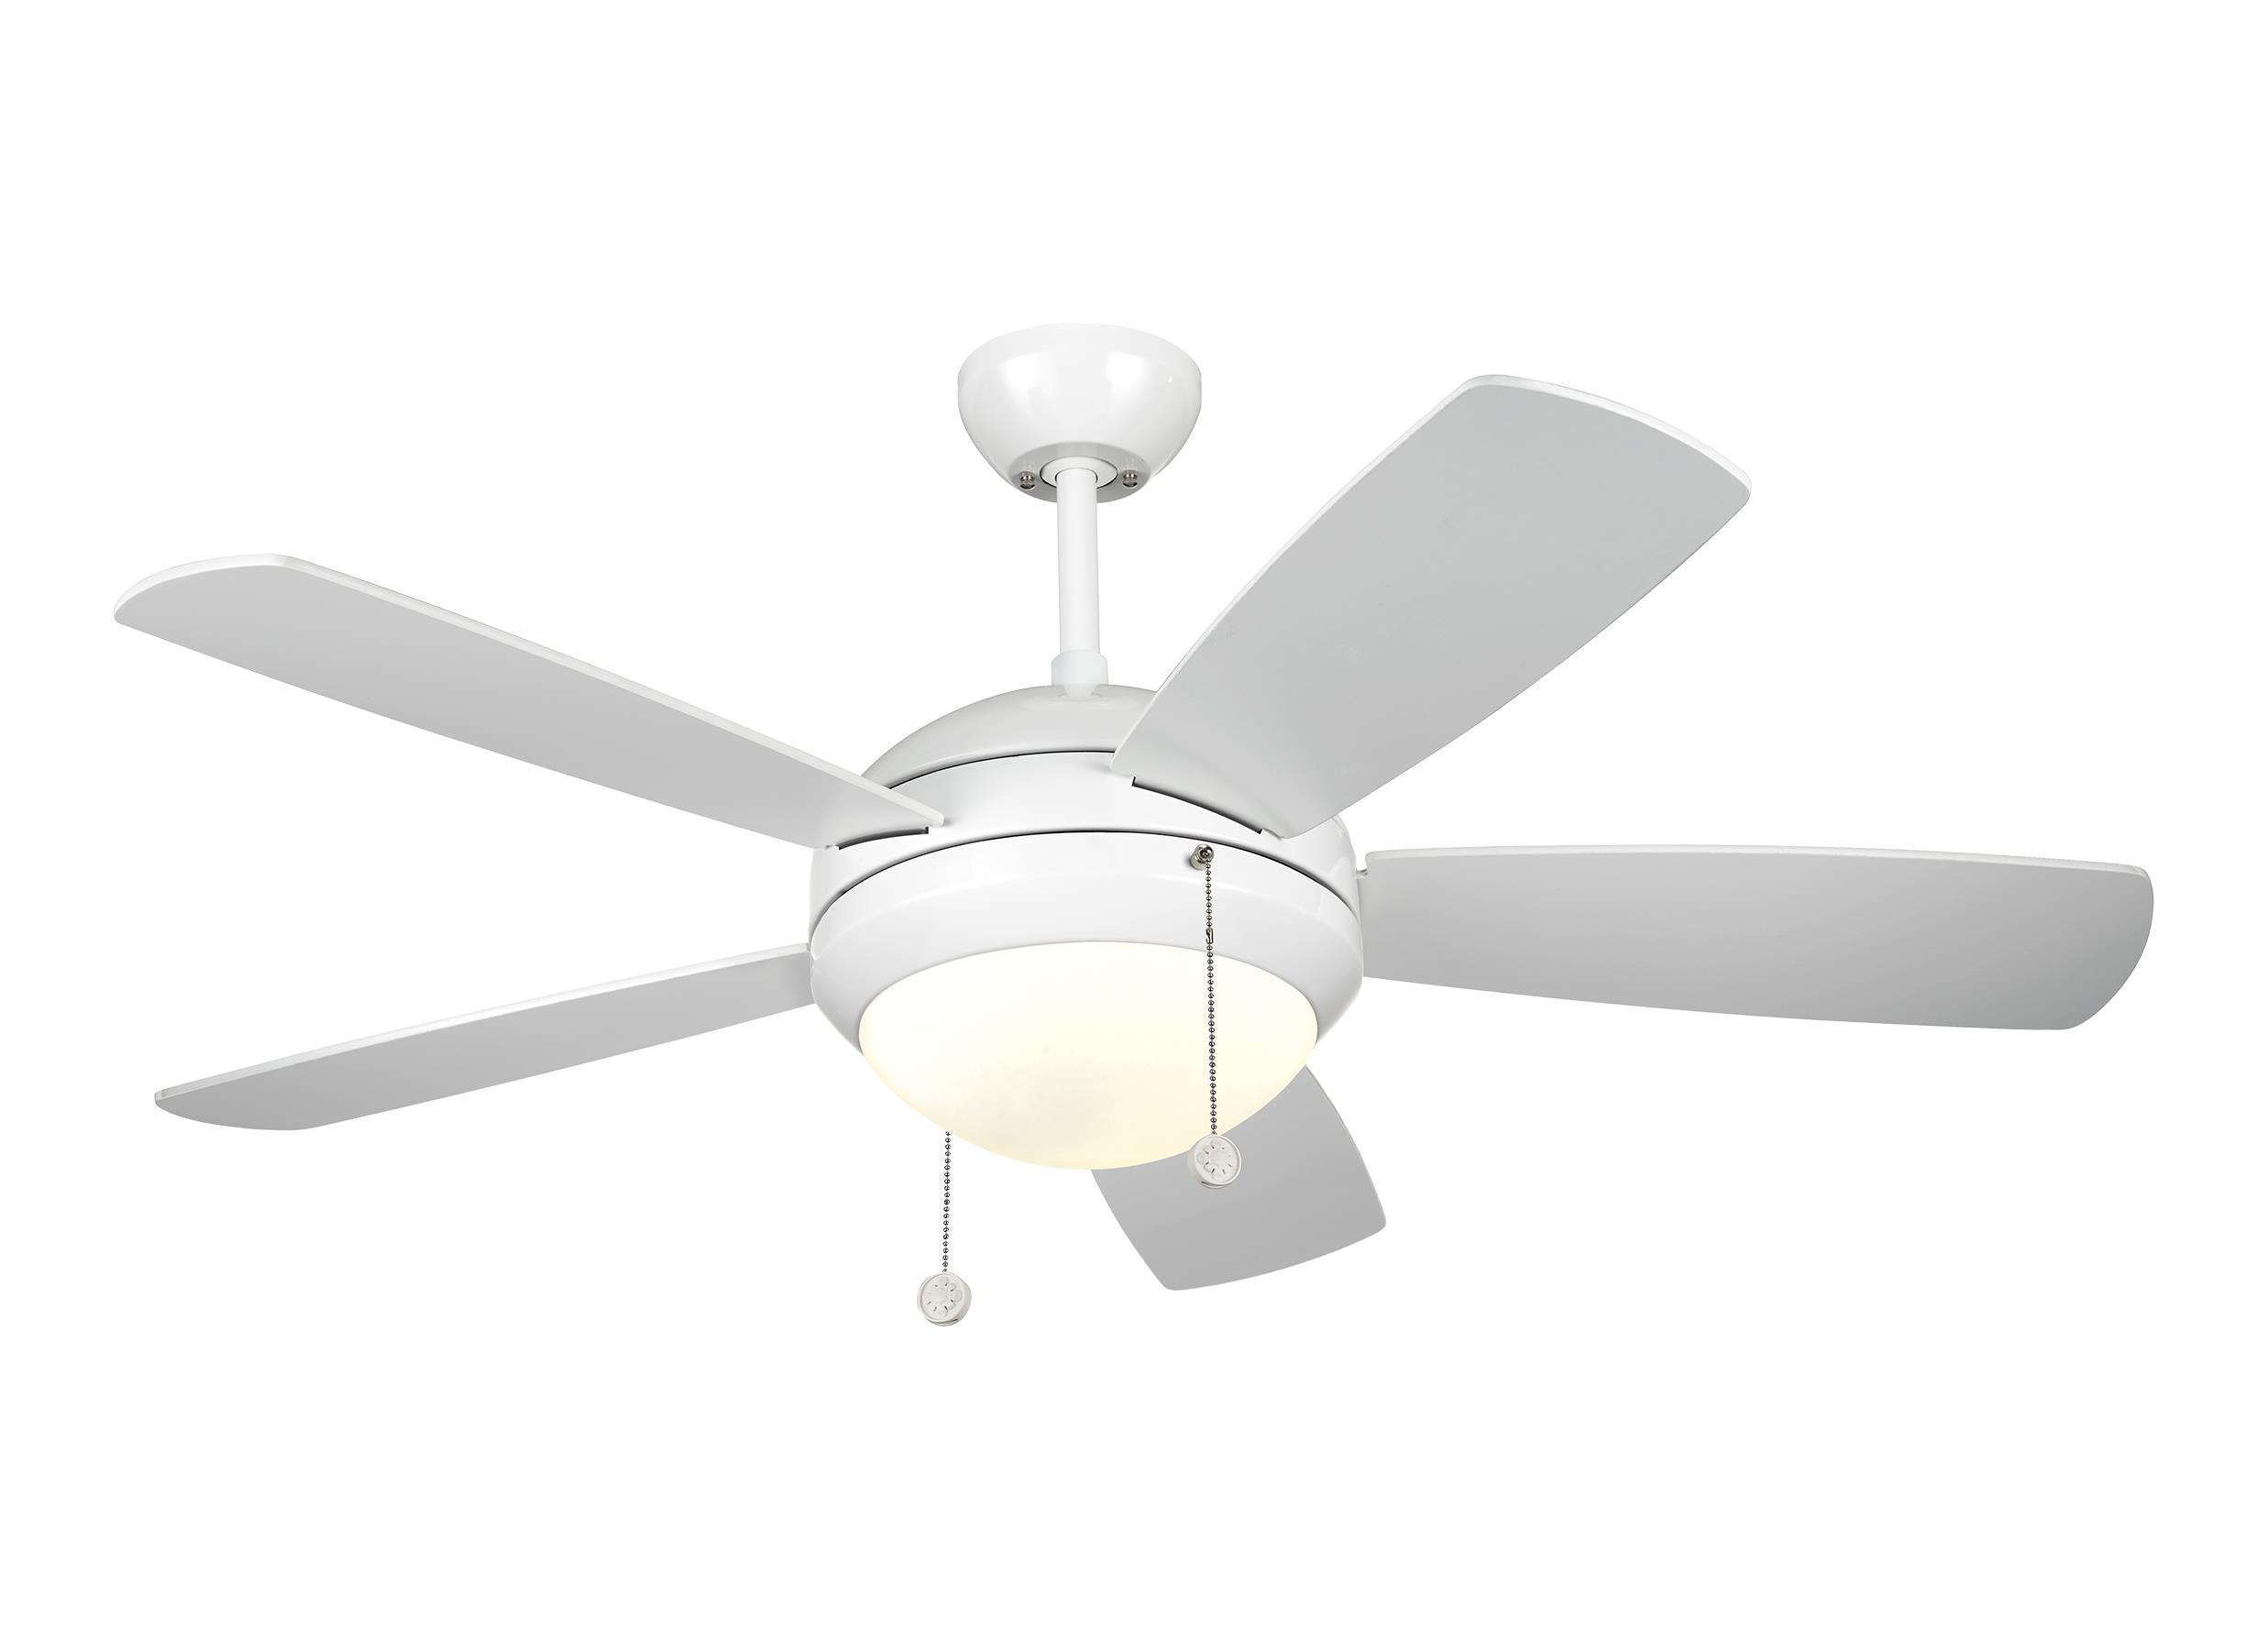 White Ceiling Fans by the Monte Carlo Fan pany